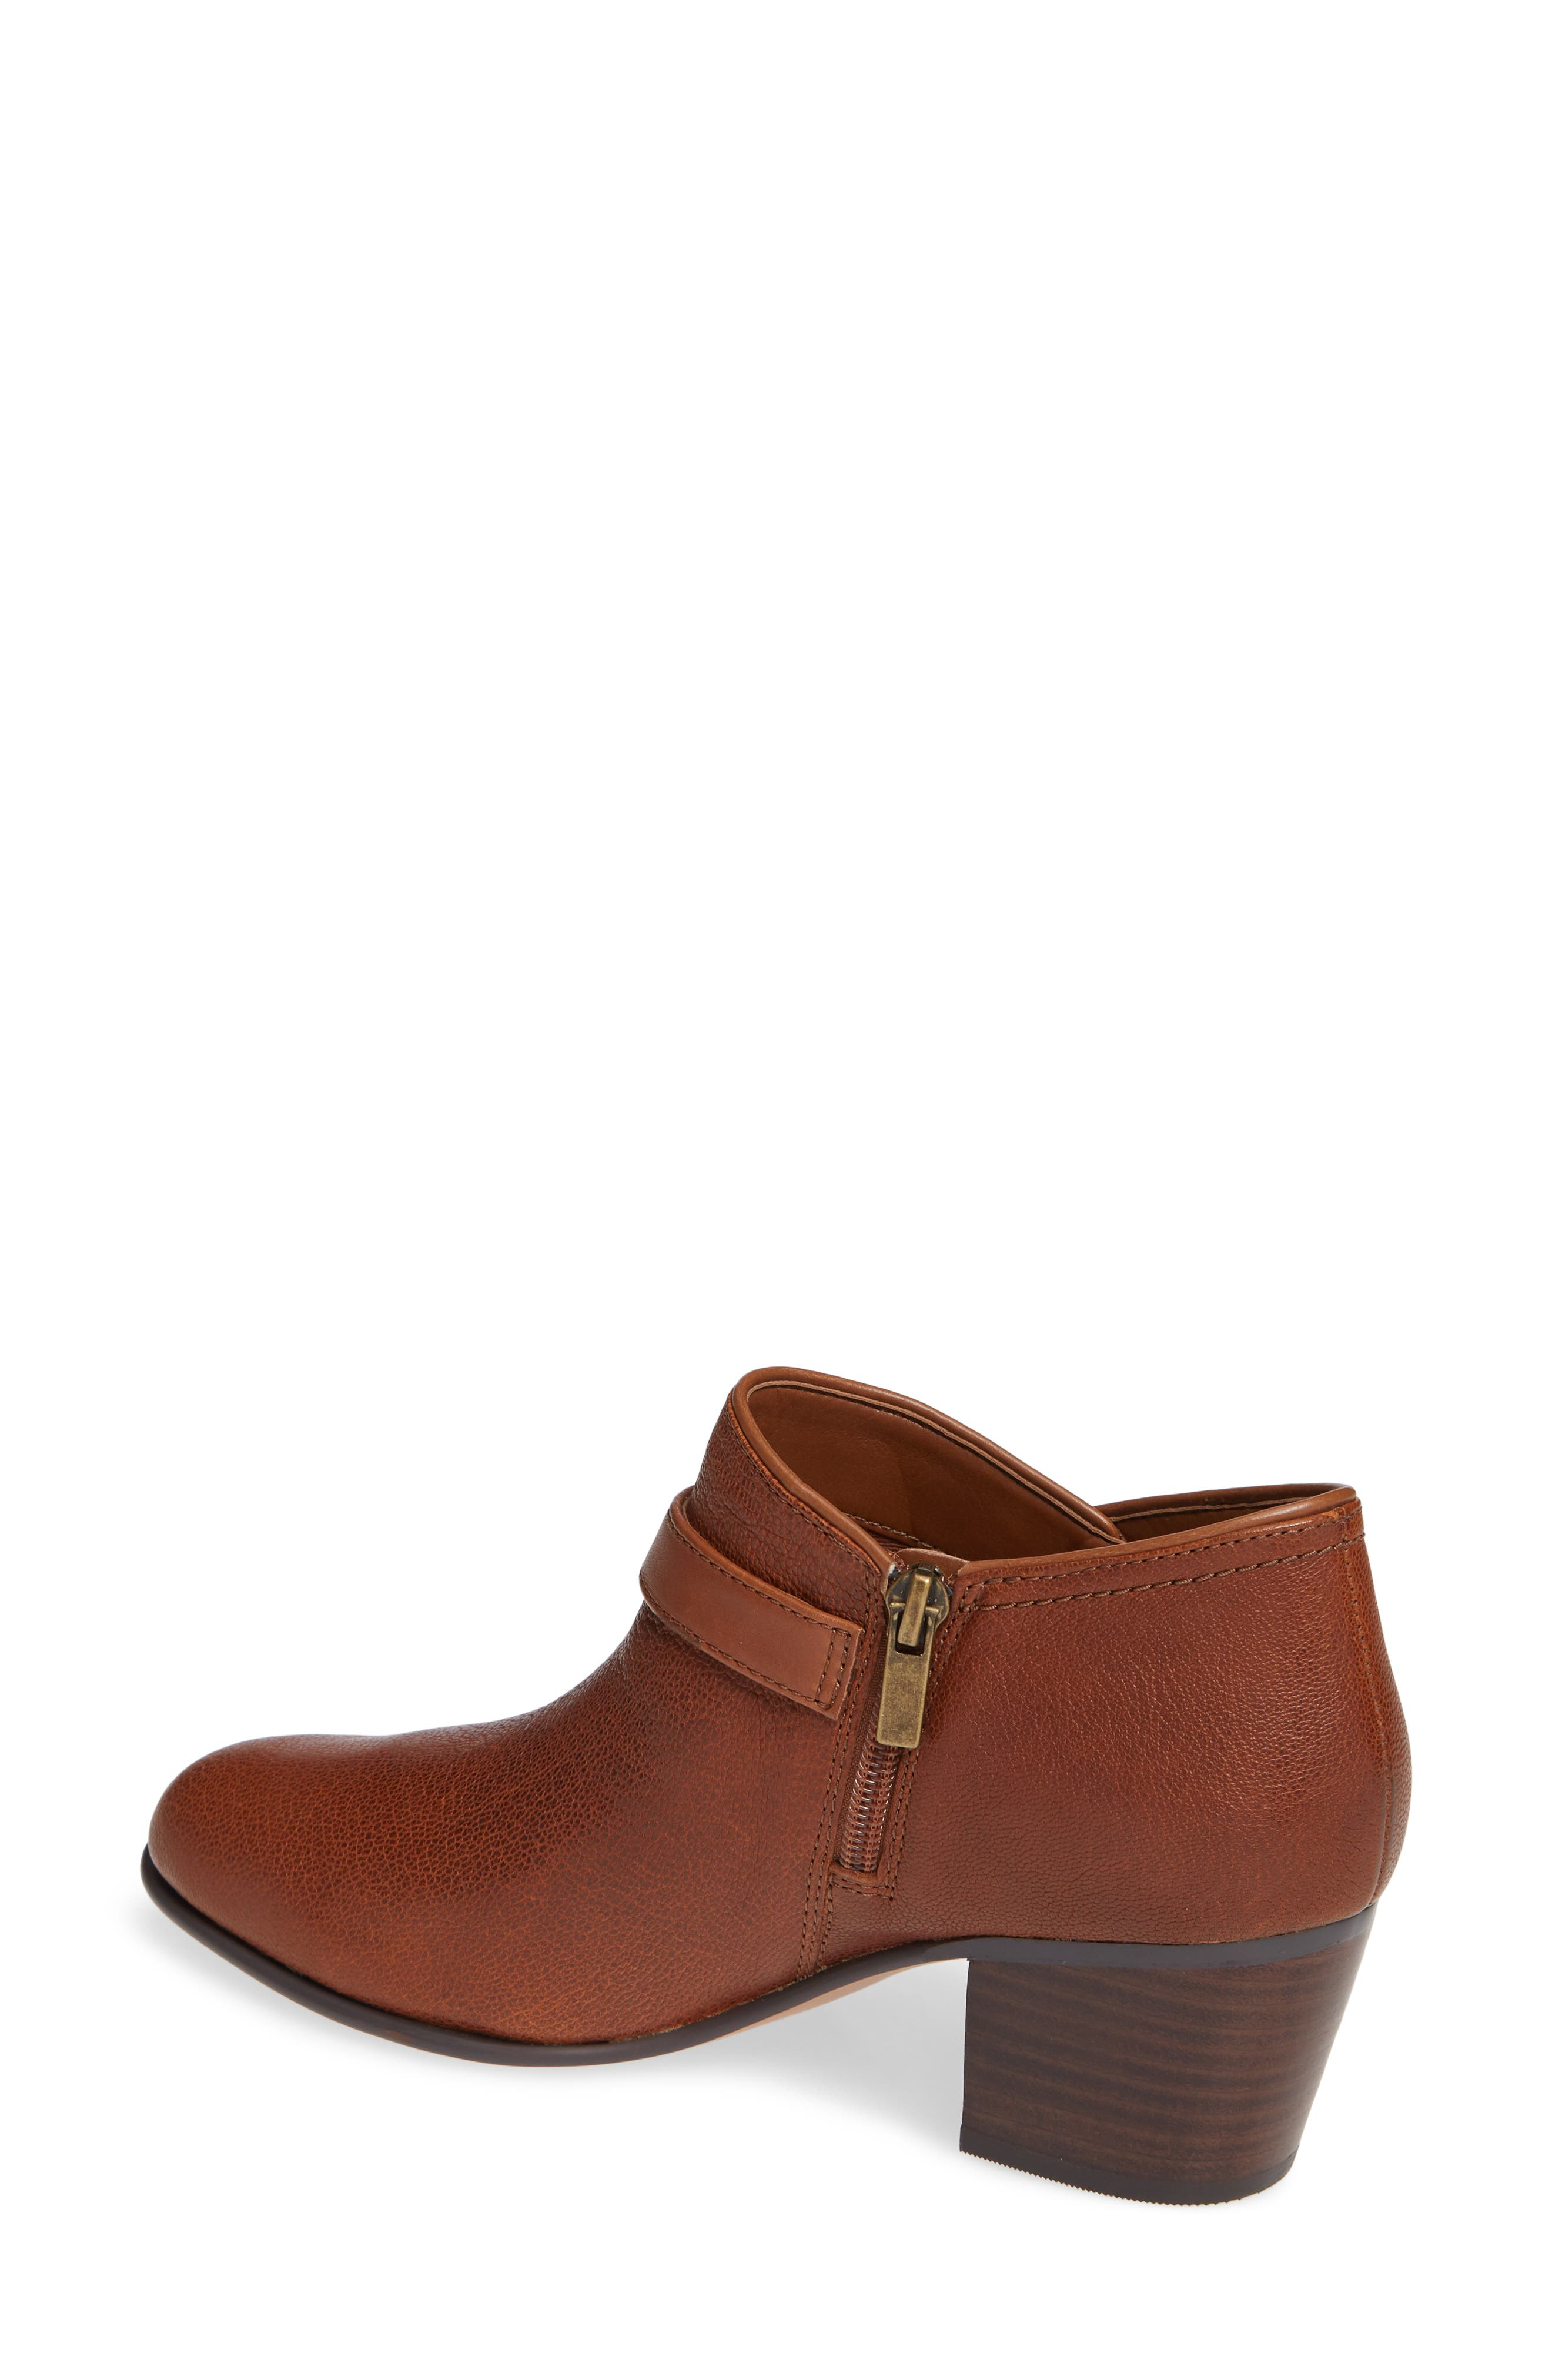 Maypearl Milla Bootie,                             Alternate thumbnail 2, color,                             DARK TAN TUMBLED LEATHER